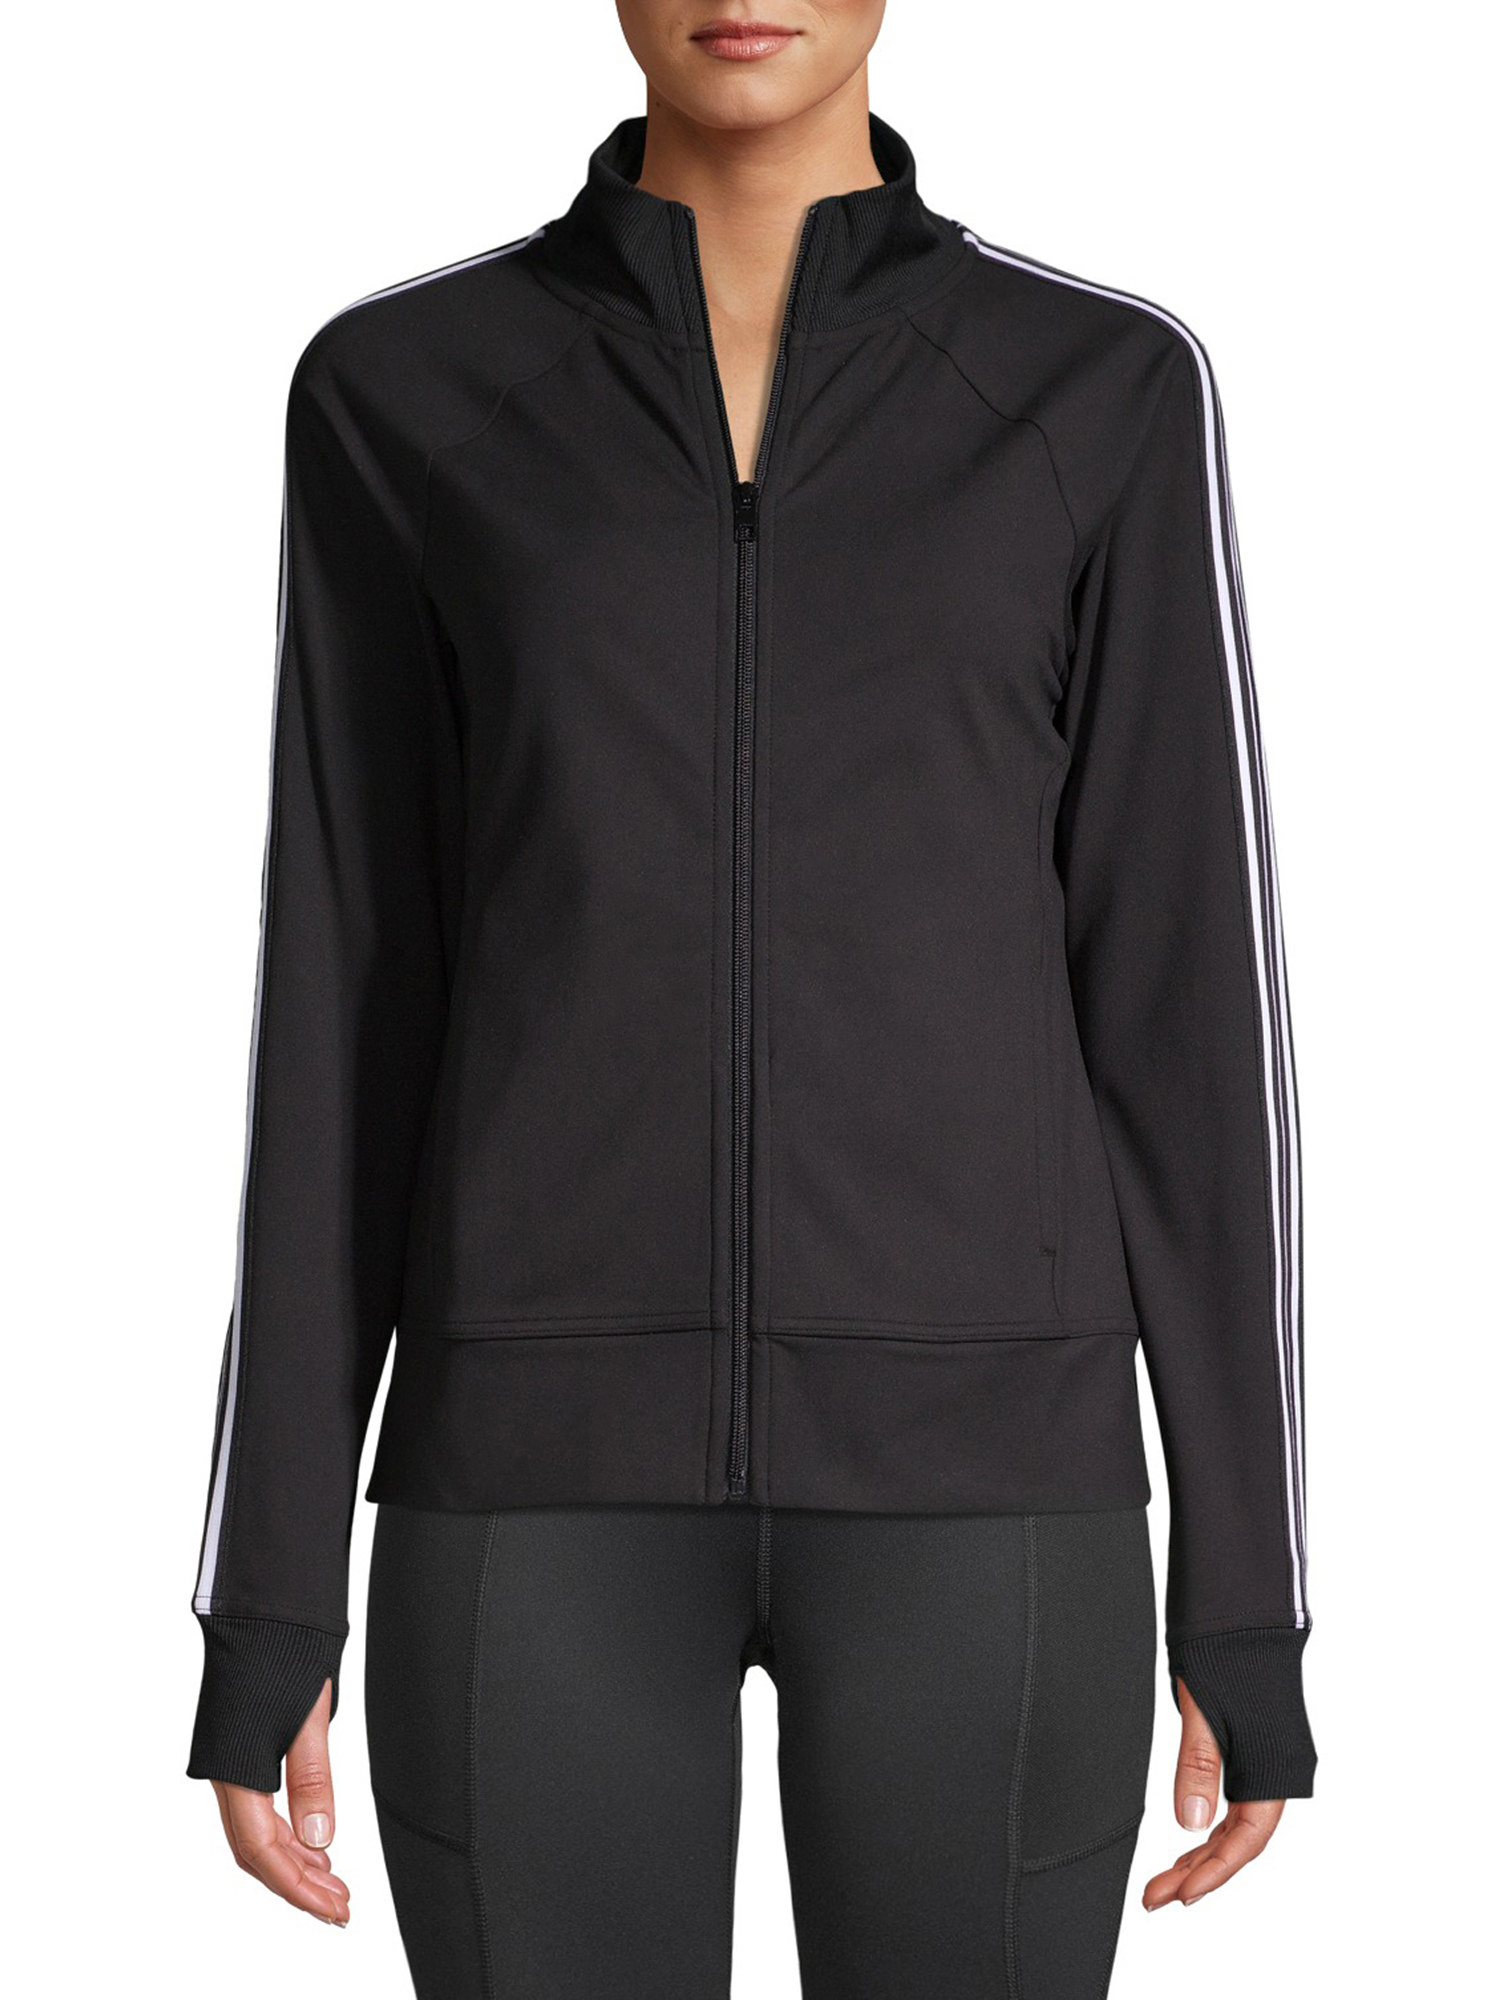 The sporty zip hoodie with striped sleeves and thumb holes